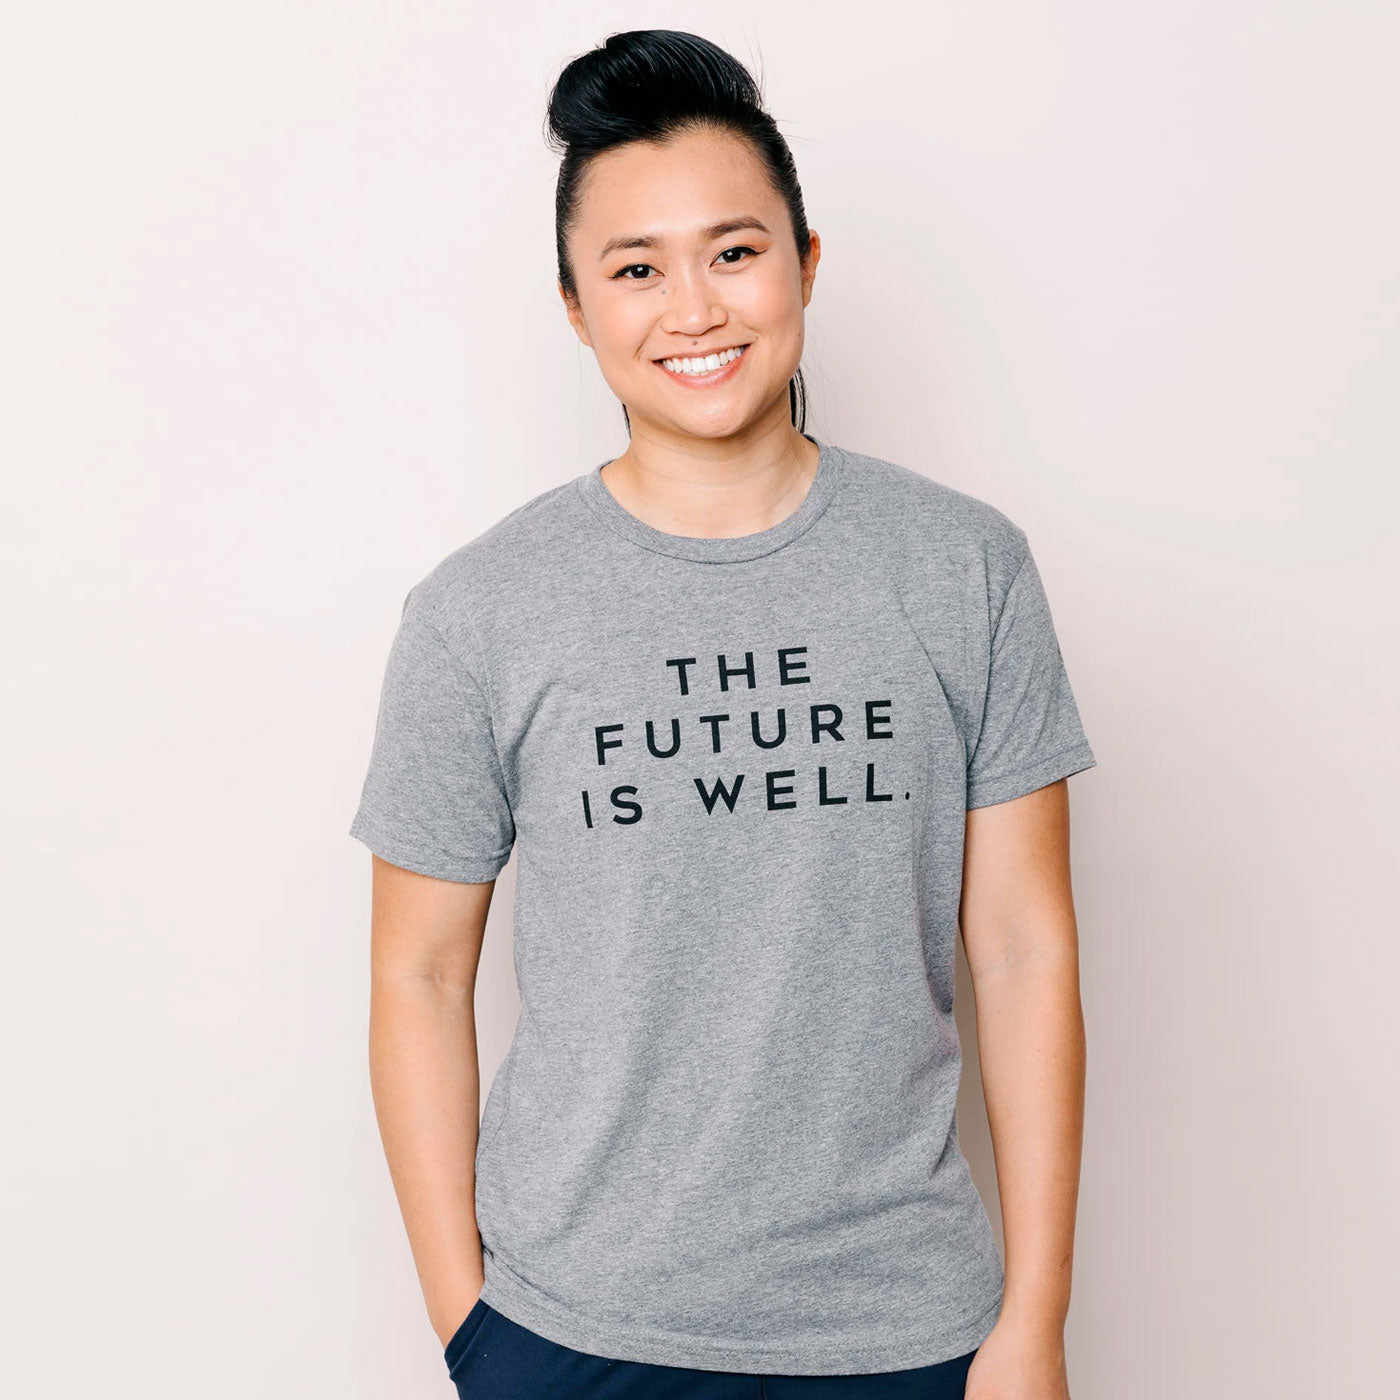 The Future is Well Unisex Shirt